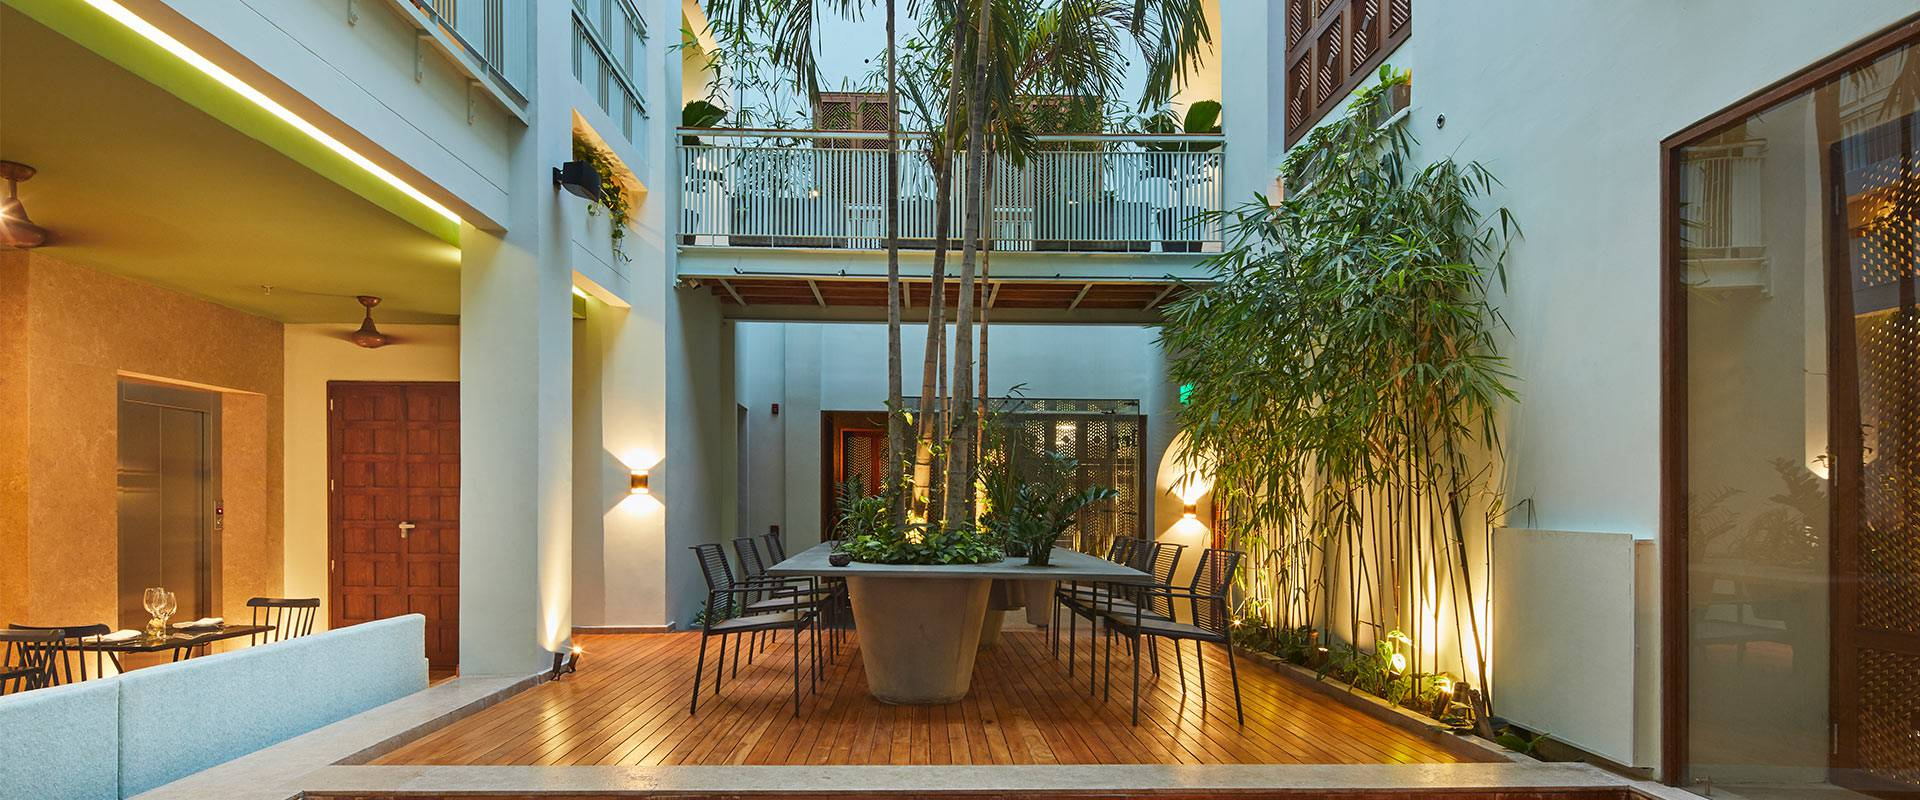 Boutique hotel with a colombian   and sustainable luxury design casona del colegio hotel cartagena de indias